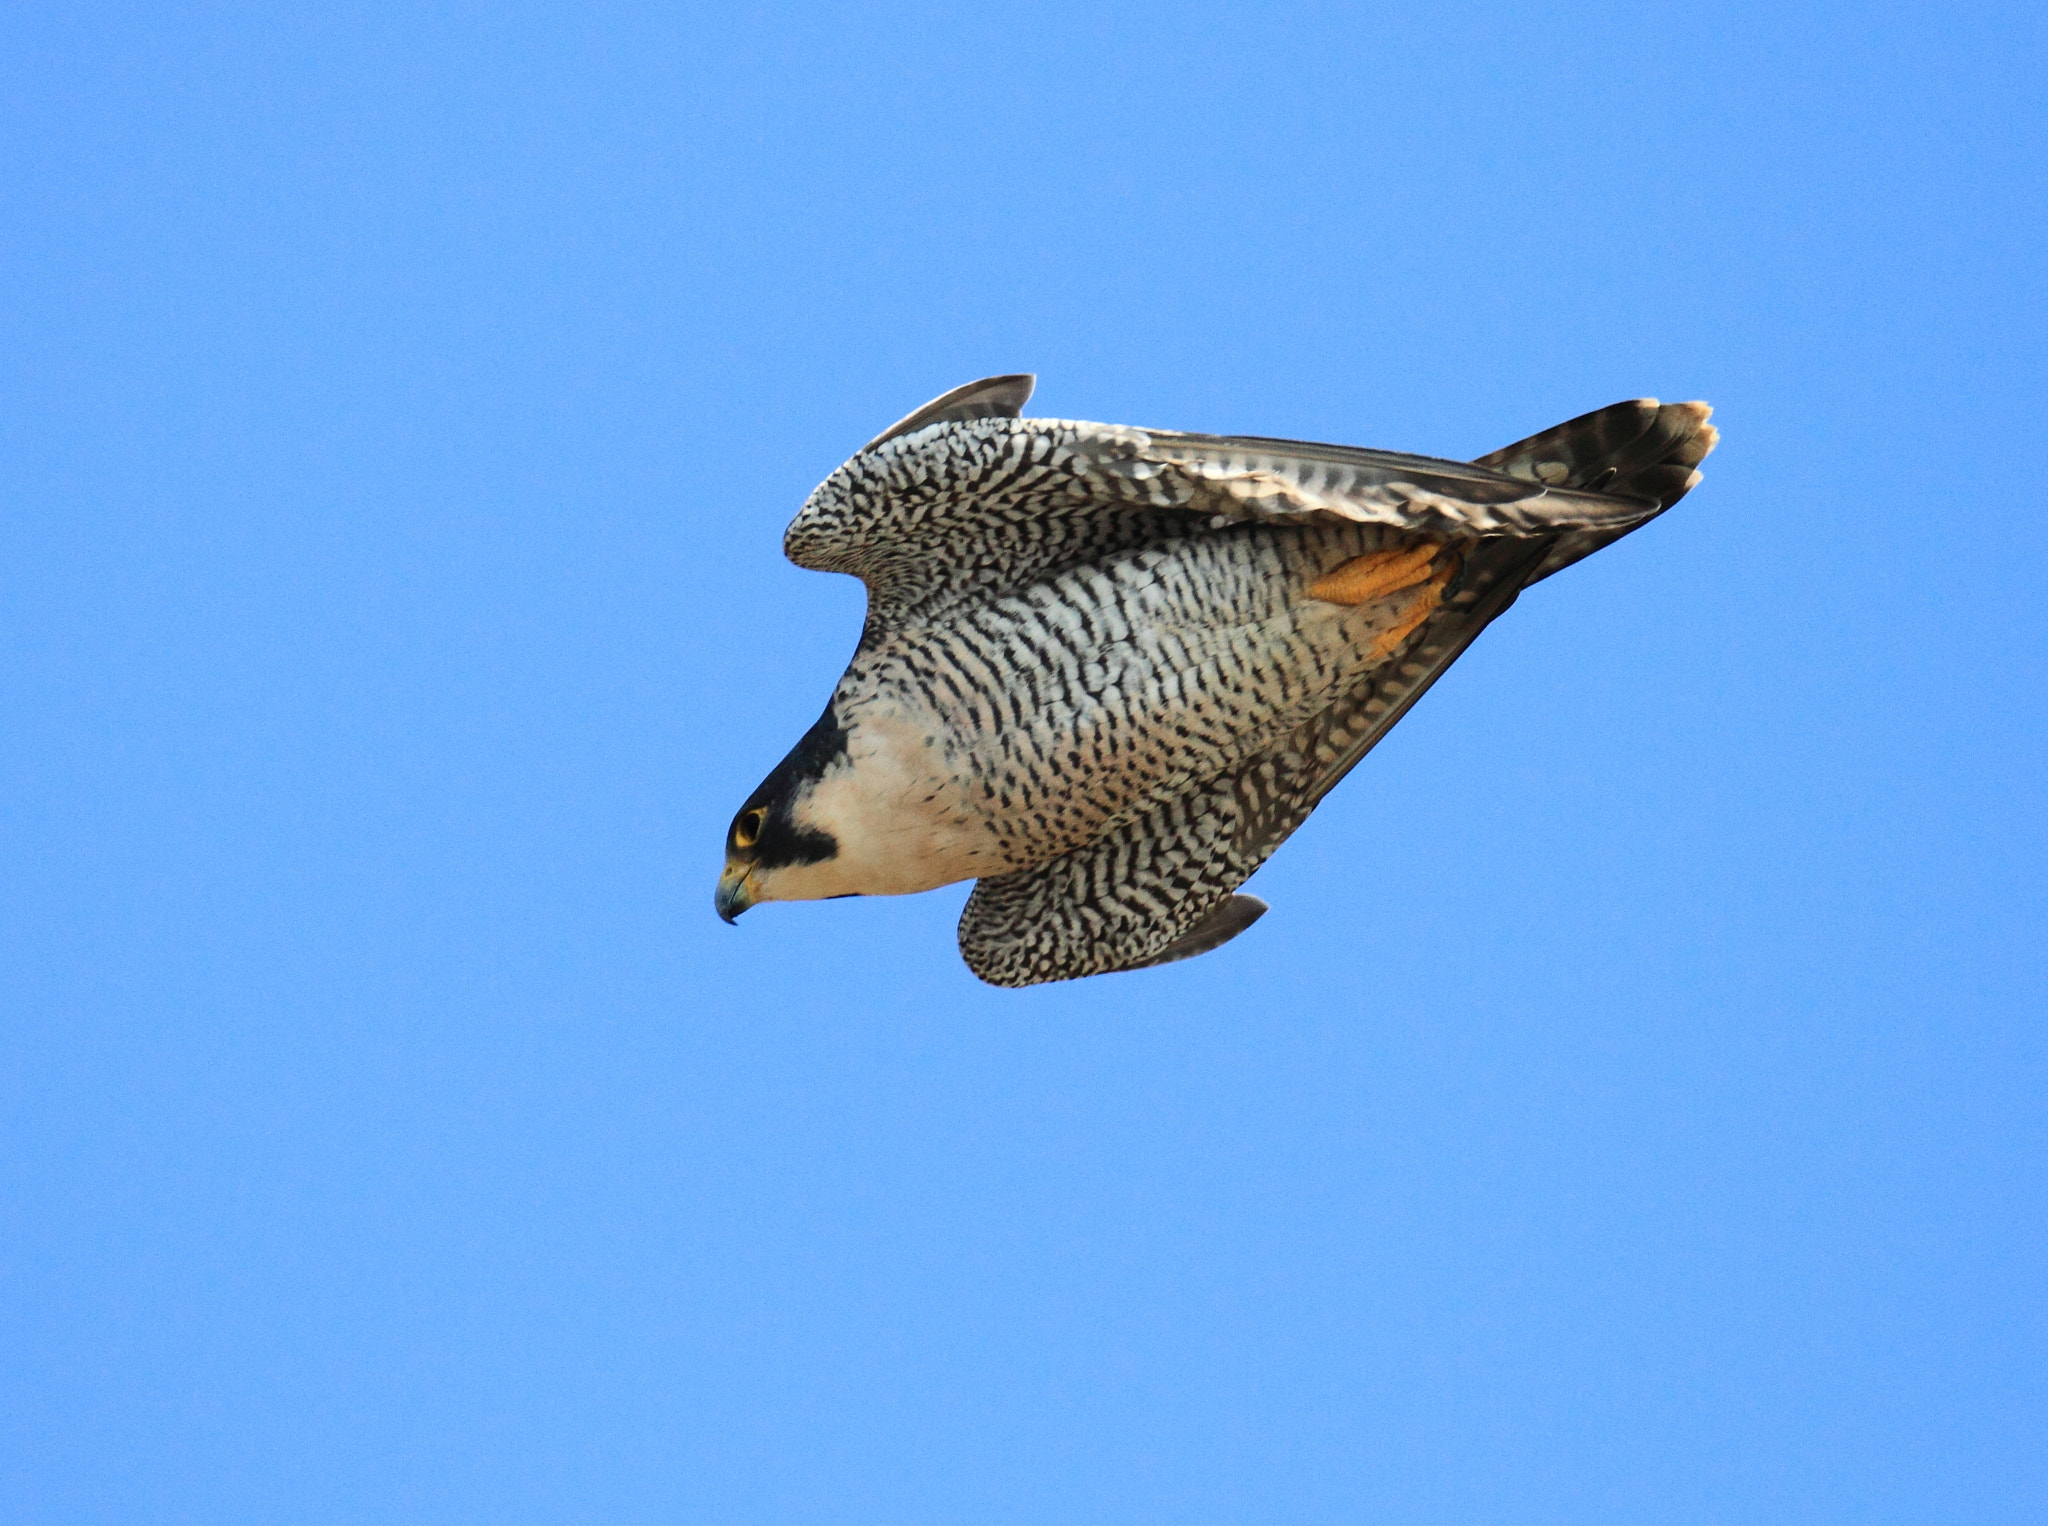 Photograph Peregrine Falcon in a Dive by Asami Akihiro on 500px